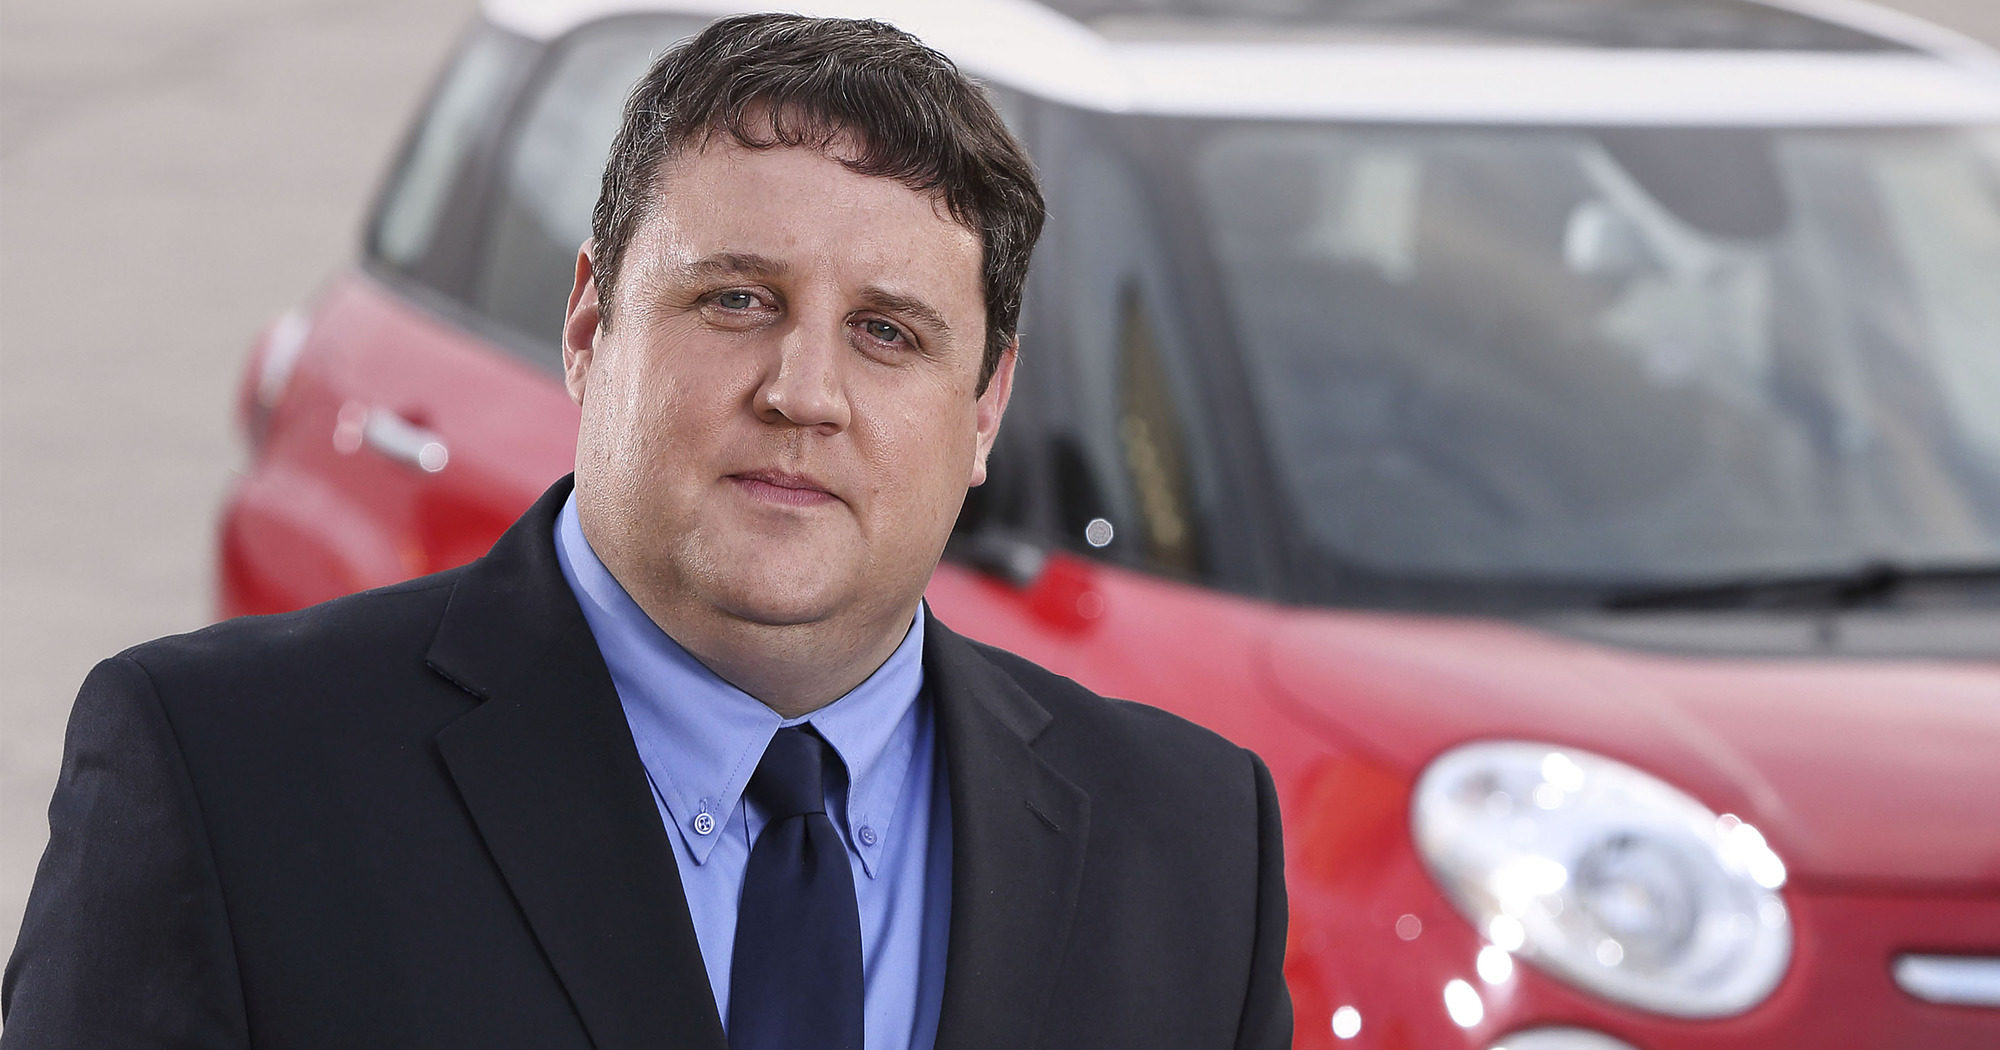 Car Share: Peter Kay 'thrilled' to hear BBC will air repeats of his comedy show